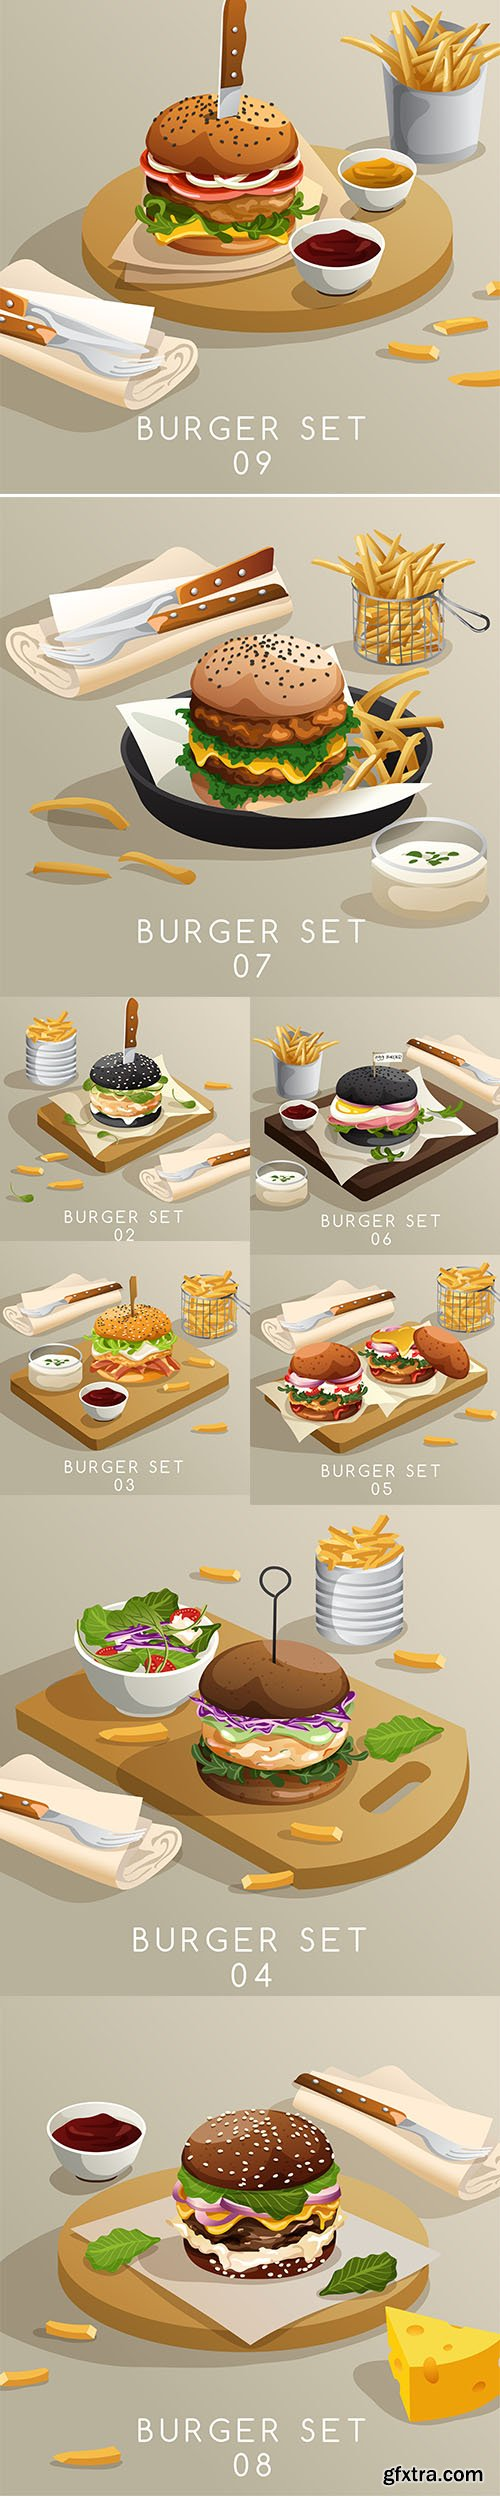 Lunch Set of Burgers French Fries Illustration